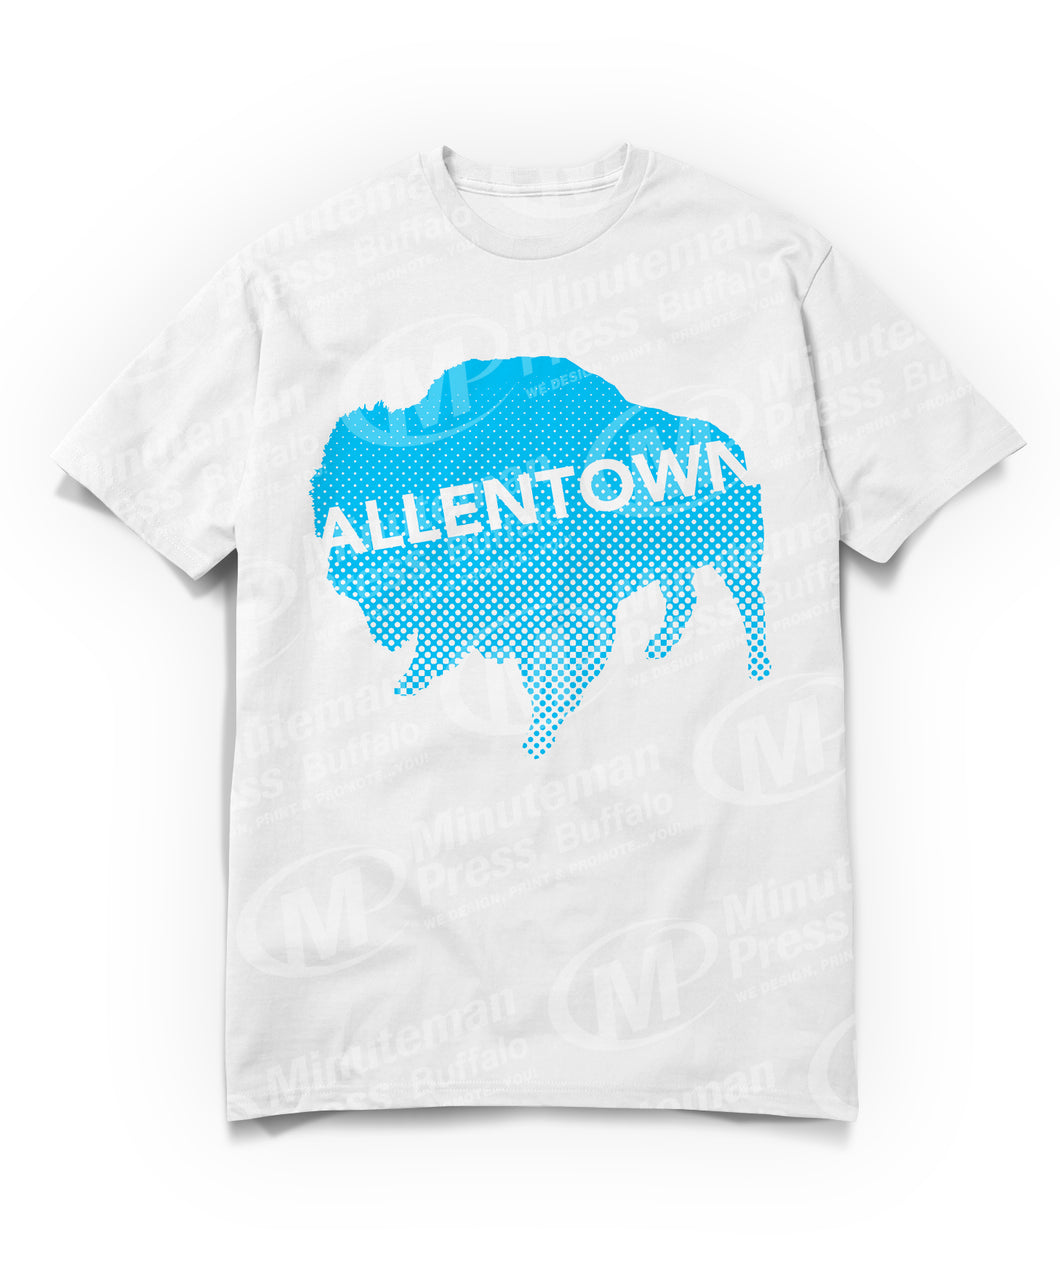 Allentown on sky blue Buffalo/Bison T-shirt